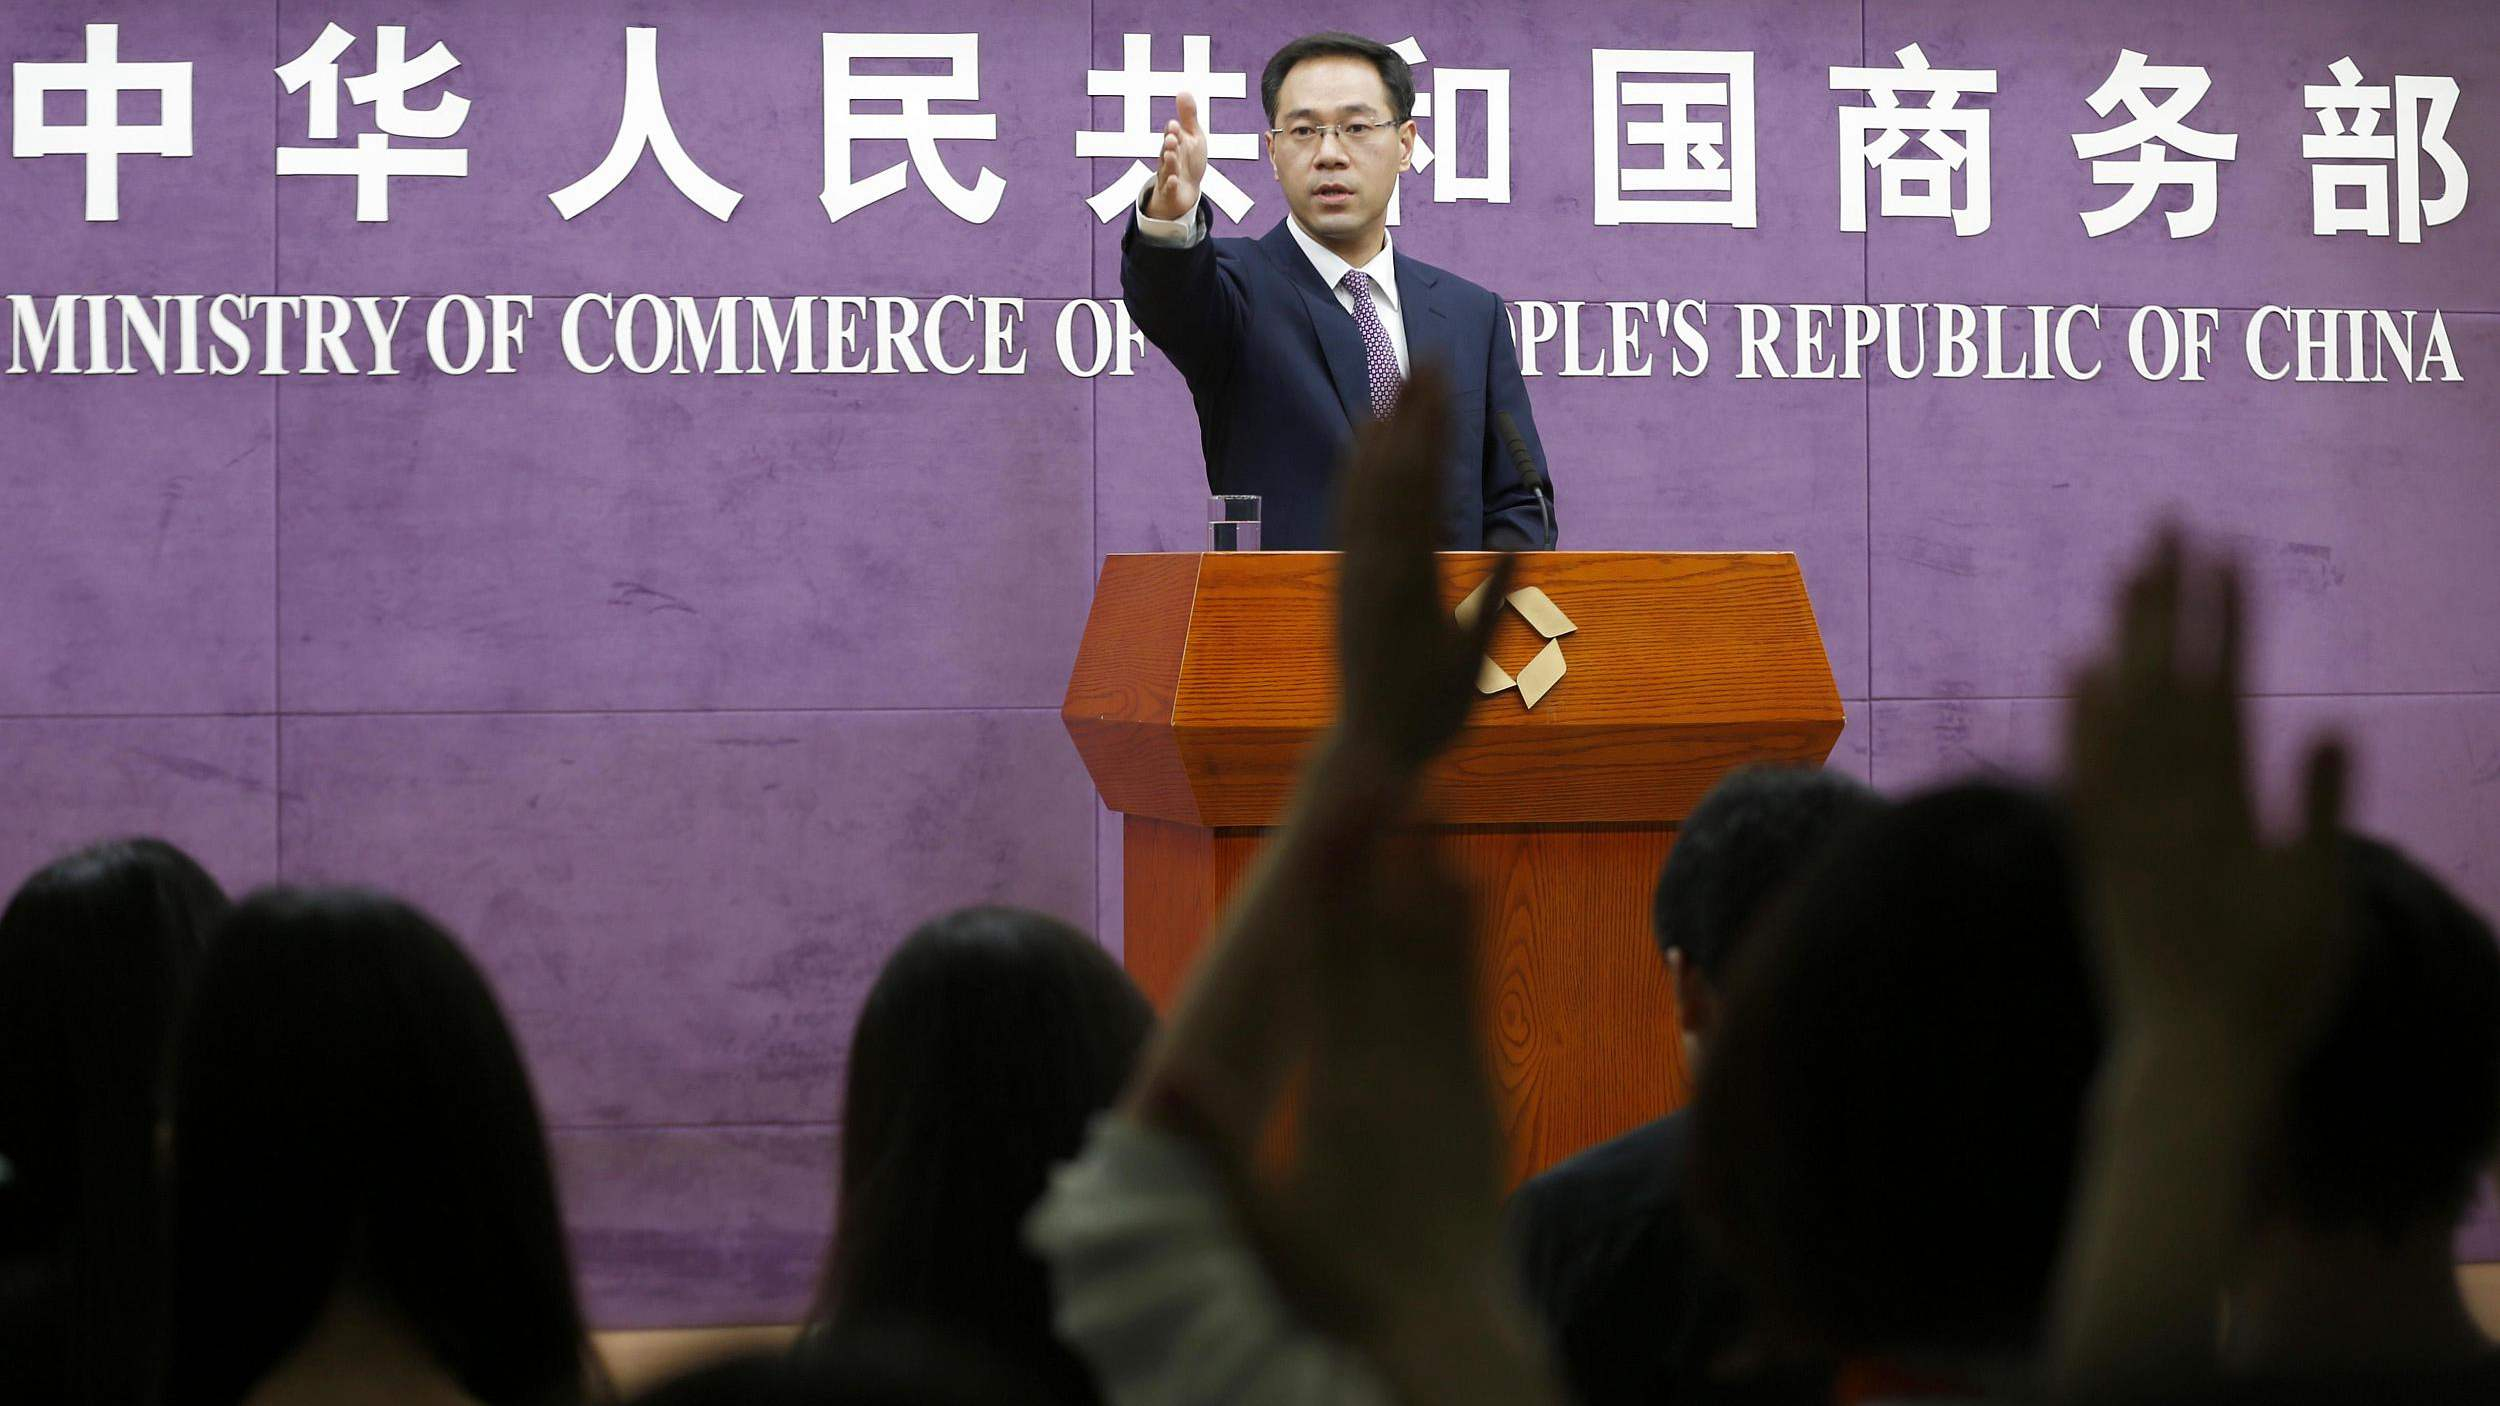 MOFCOM: China is 'closely watching' US plan to restrict foreign investment